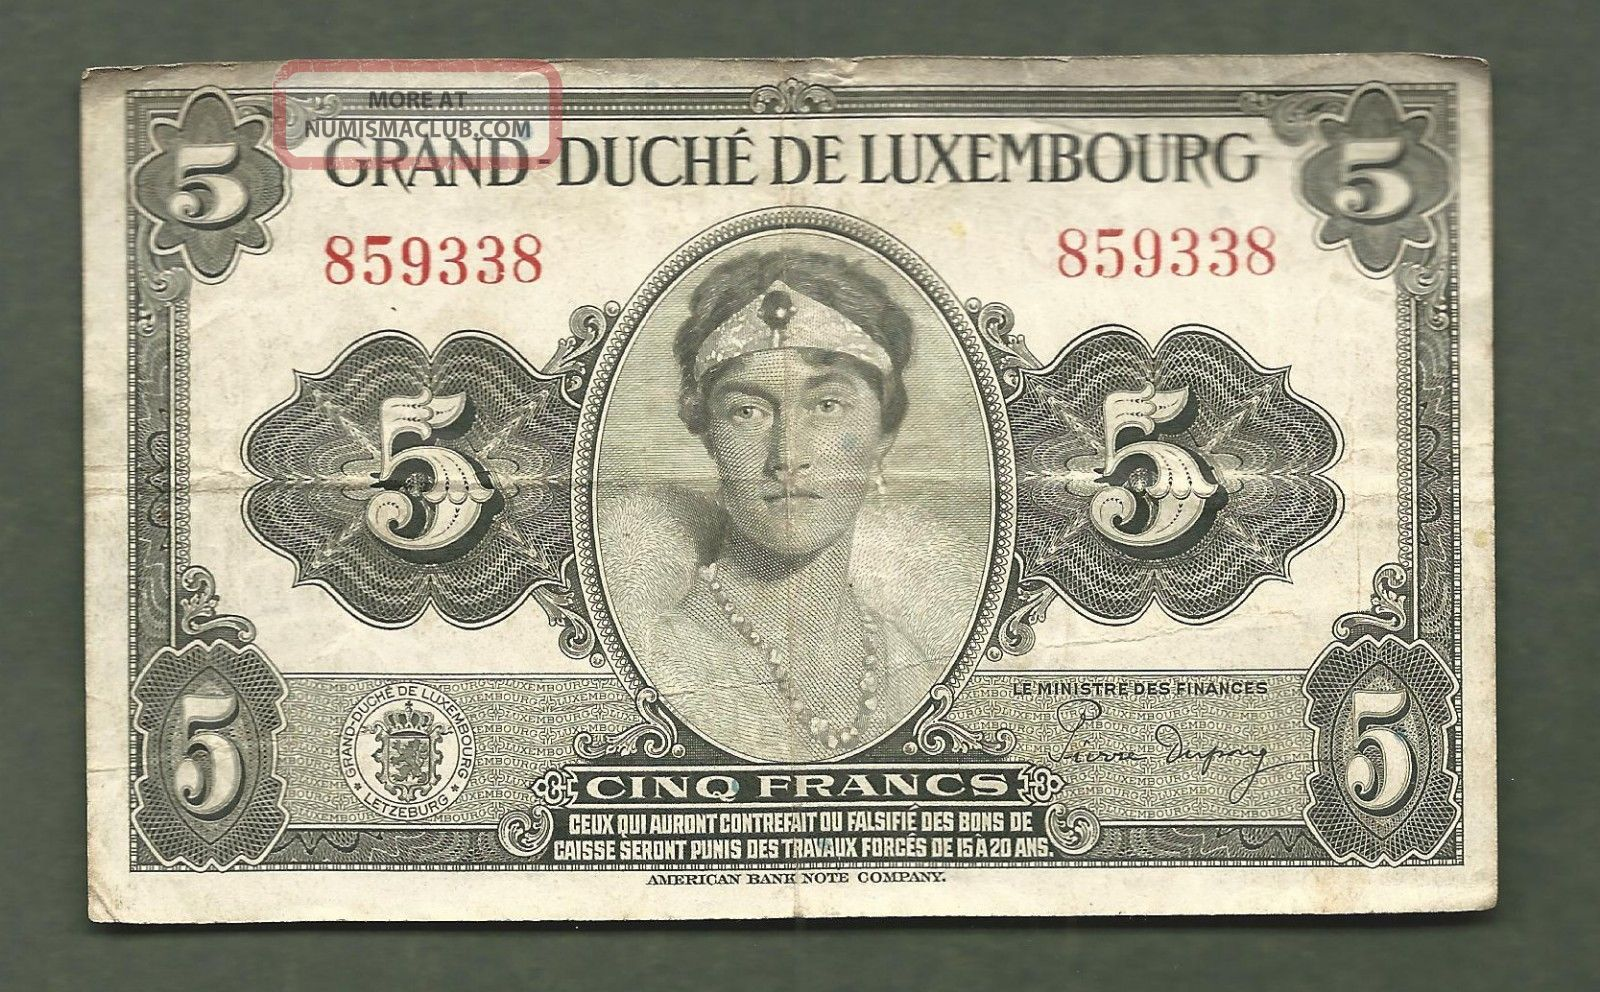 Luxembourg 5 Francs 9338 99 Cents Or Less